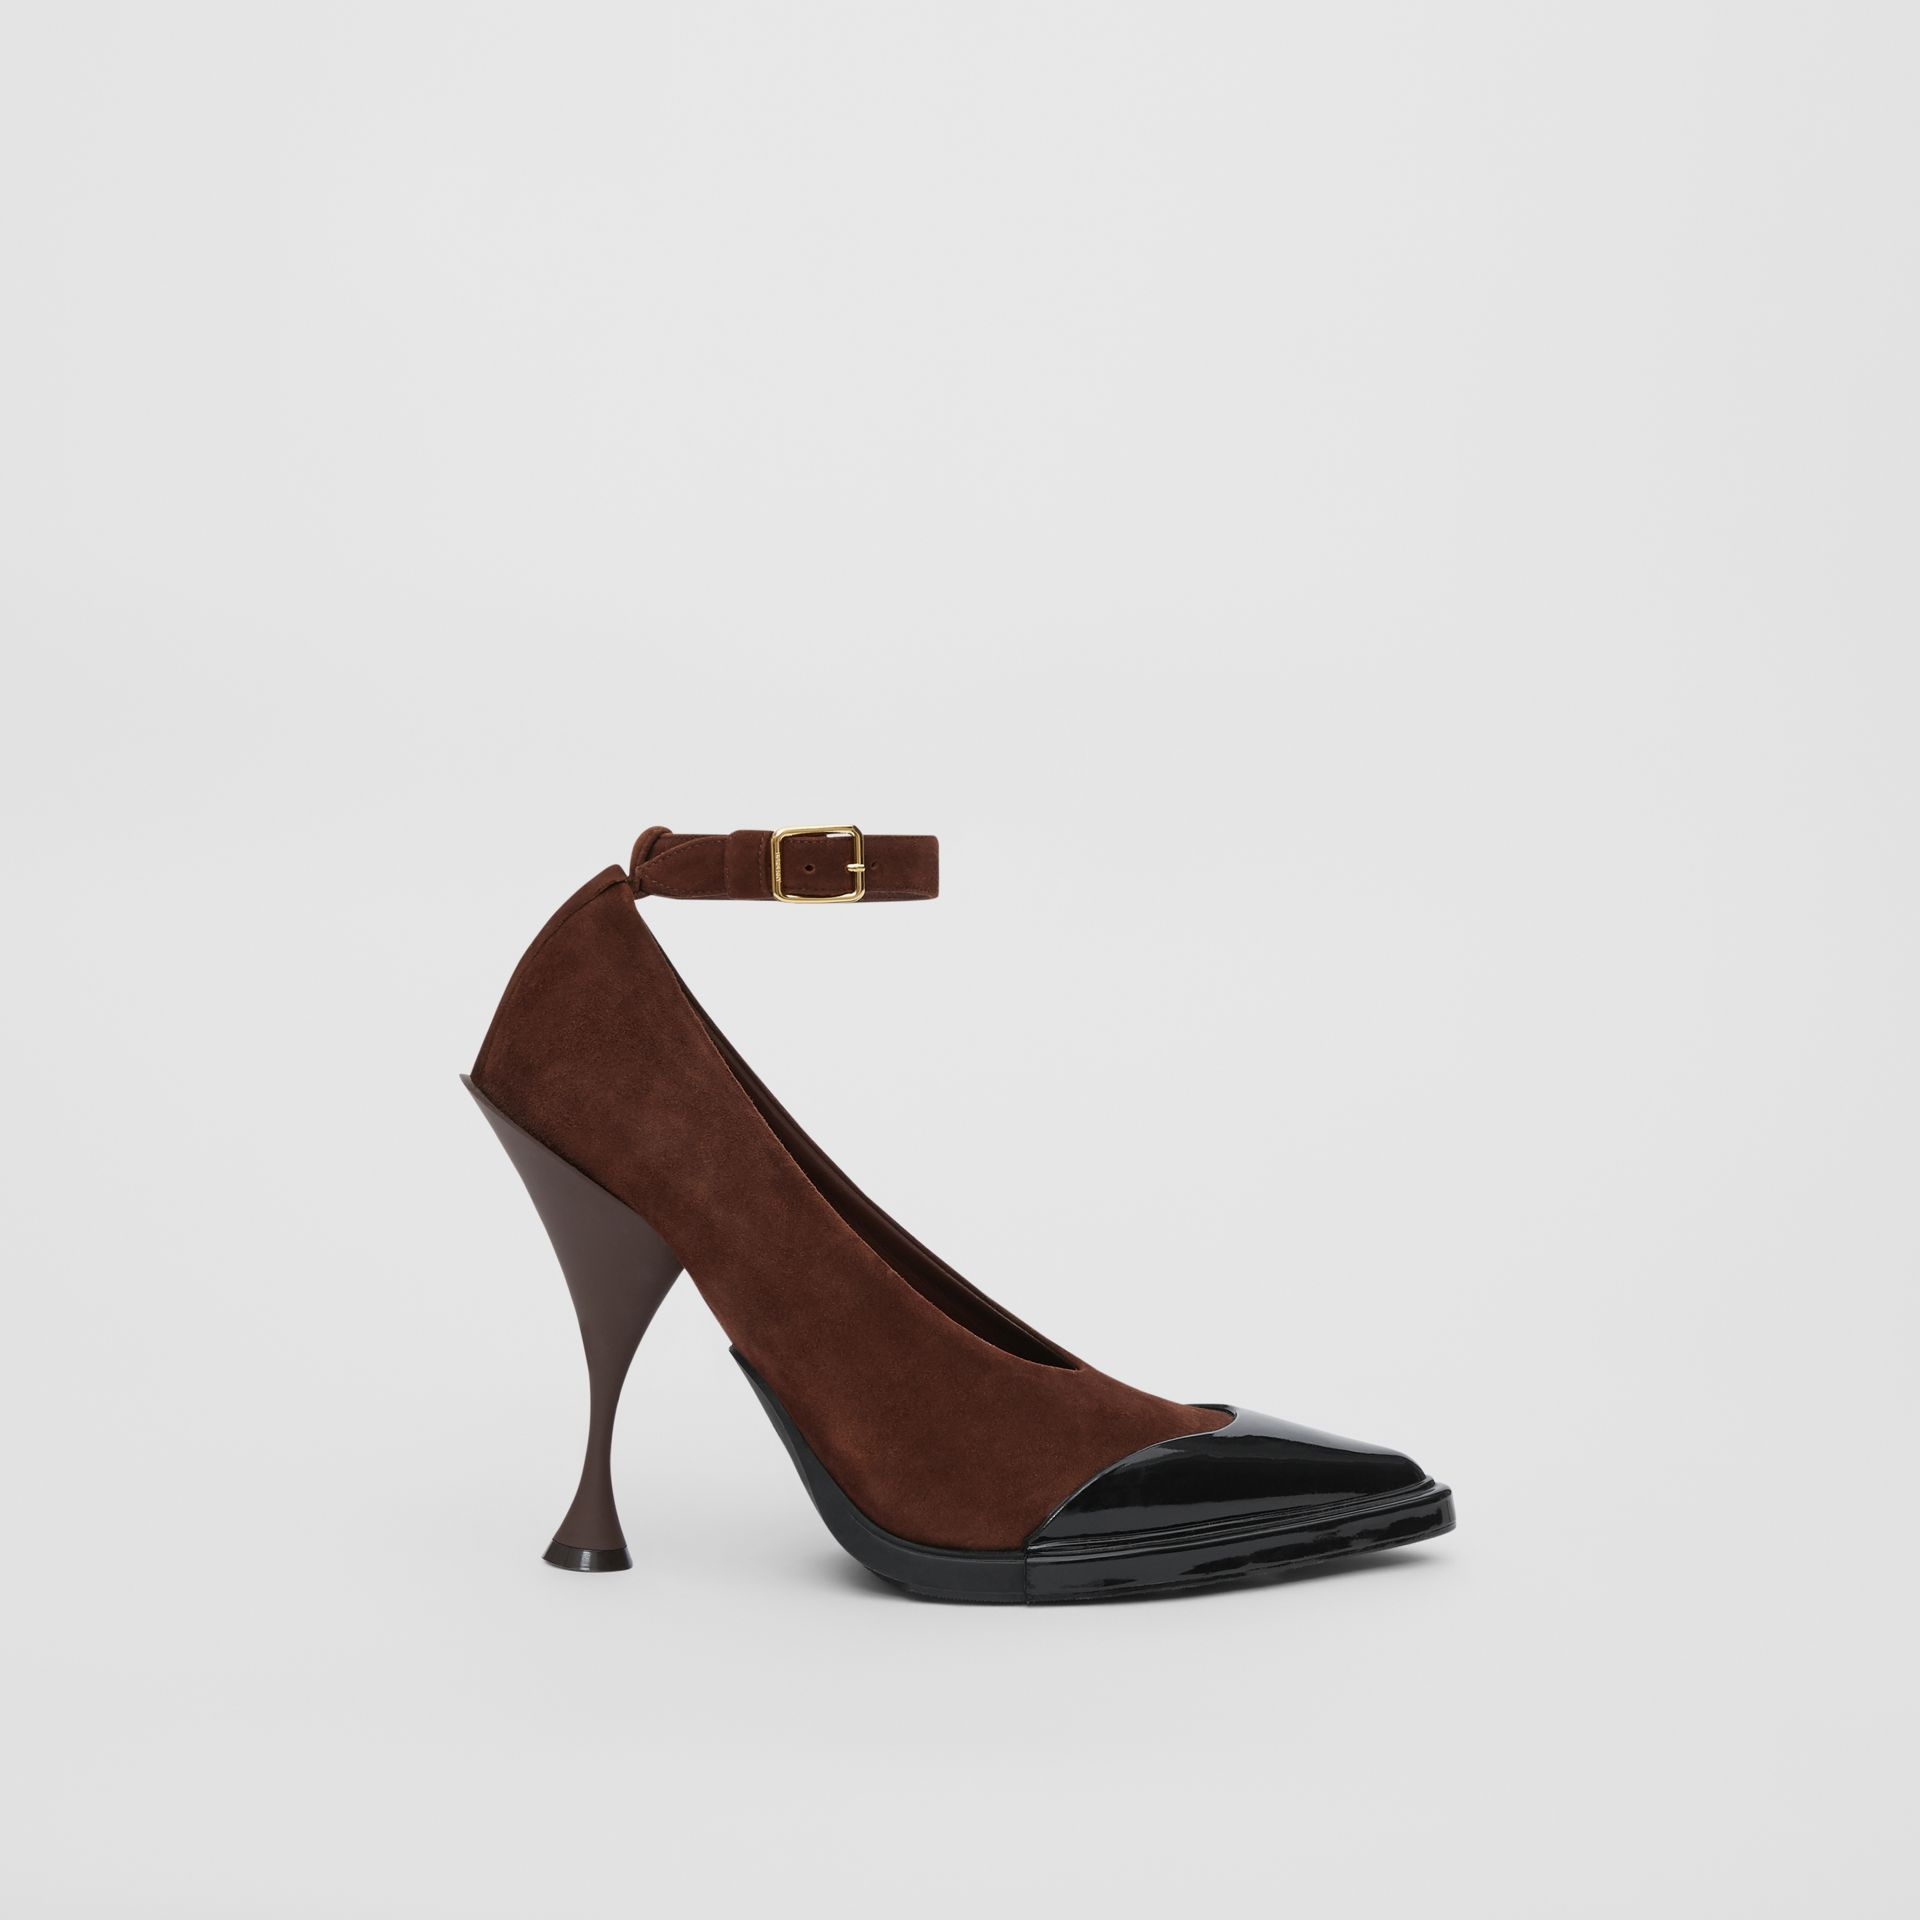 Toe Cap Detail Leather Point-toe Pumps in Dark Mocha - Women | Burberry - gallery image 5